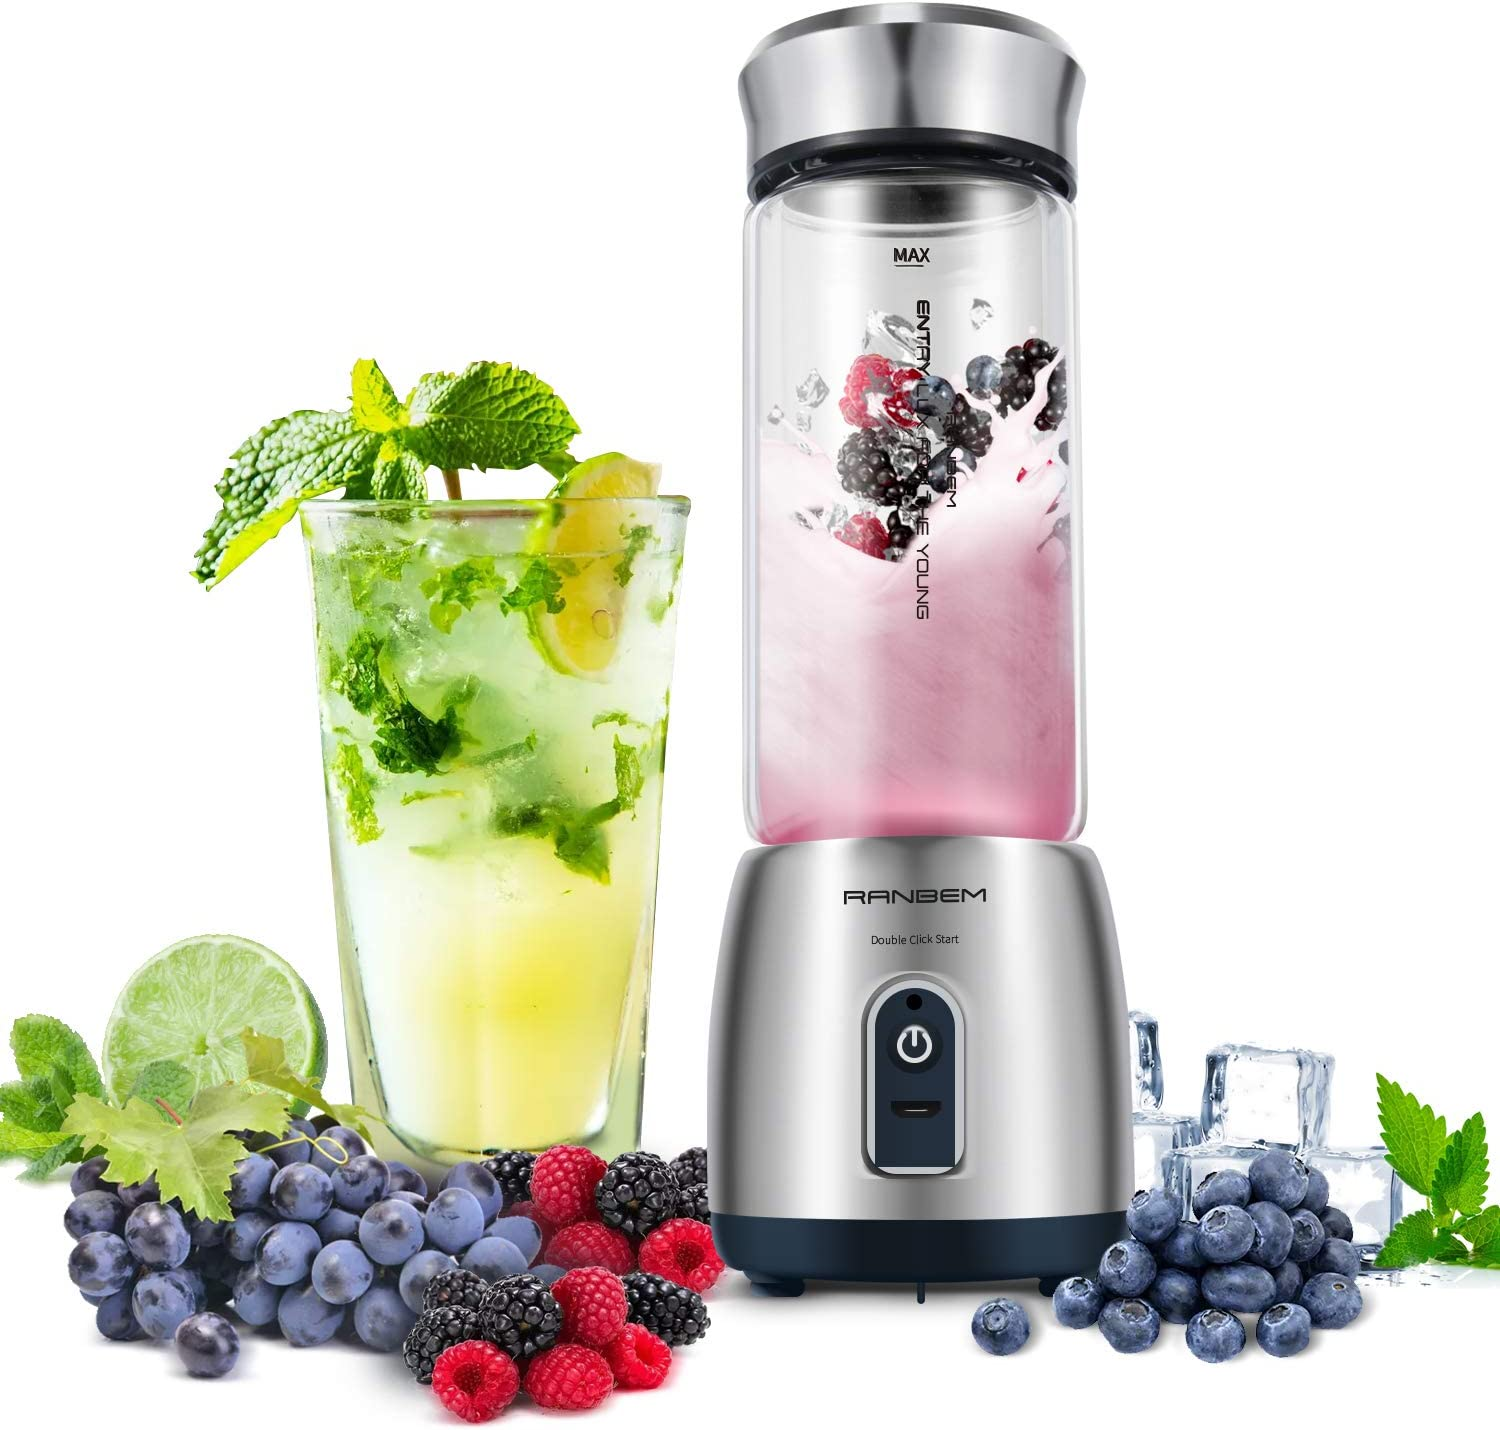 Portable Blender for Shakes and Smoothies, Cordless Mini Bullet Juicer Blender for Travel, USB Rechargeable for Milk Shake, Ice, Vegetables,5200MAH with 15oz Glass Cup